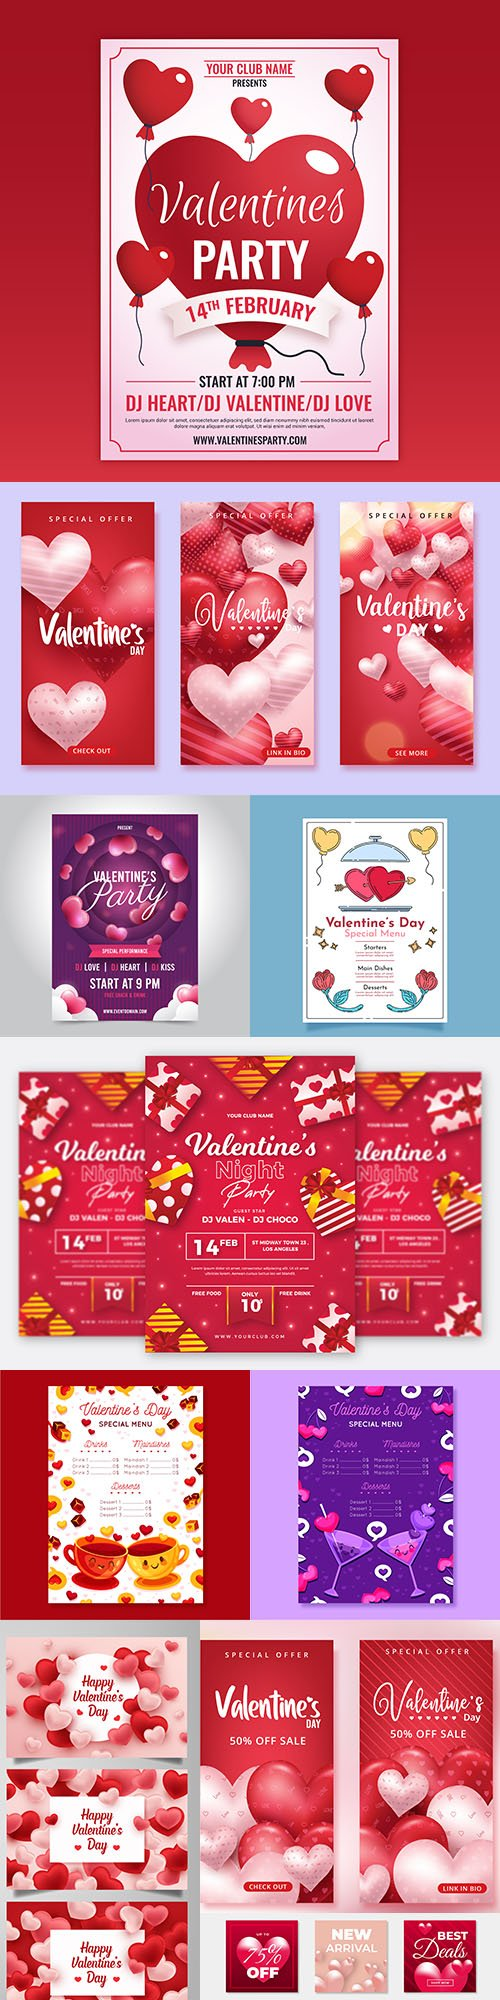 Happy Valentine's Day romantic decorative illustrations 38